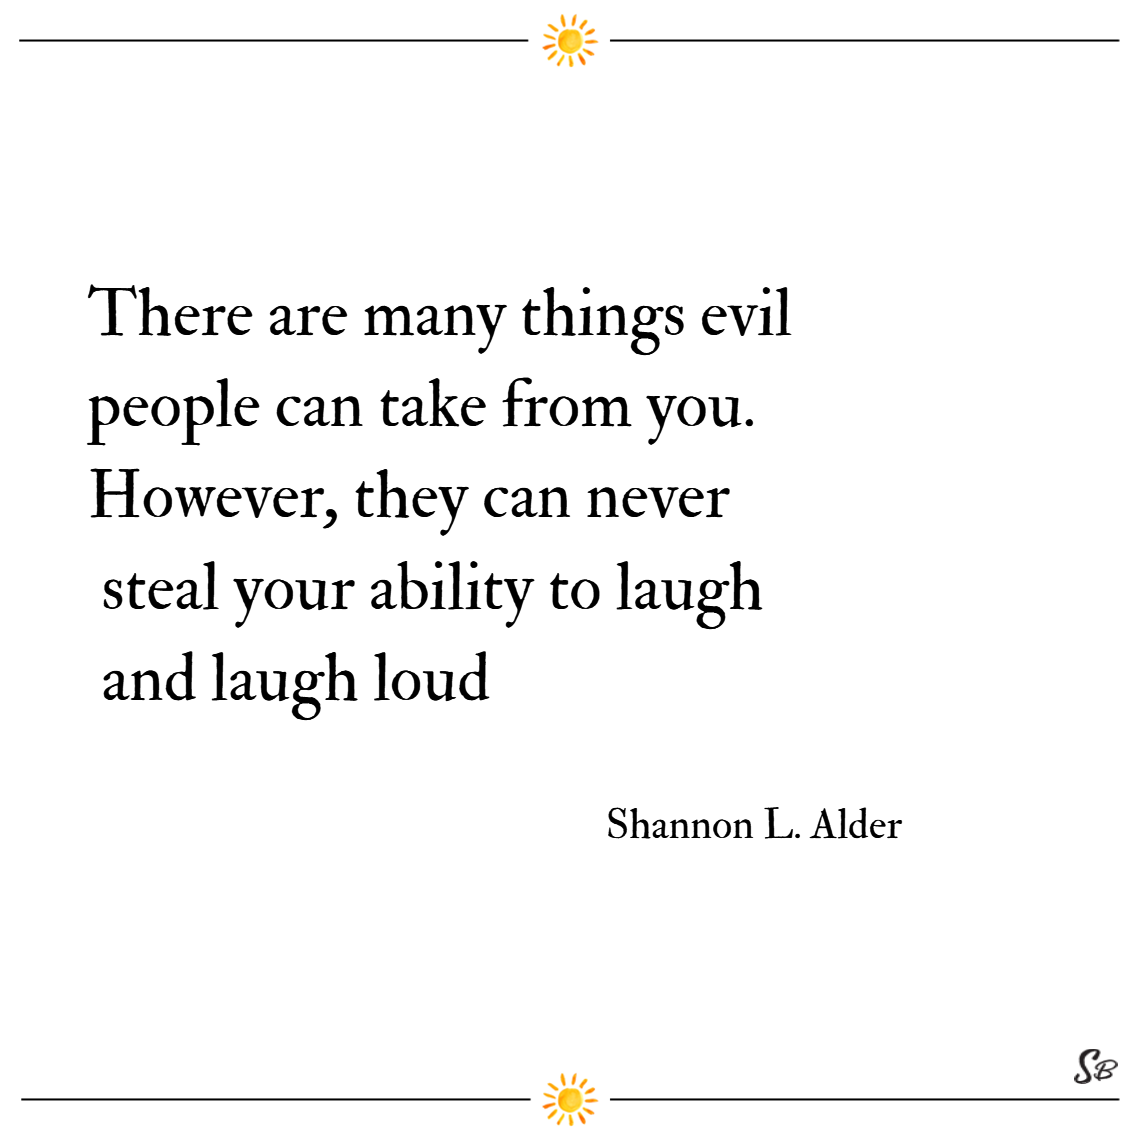 There are many things evil people can take from you. however, they can never steal your ability to laugh and laugh loud. – shannon l. alder